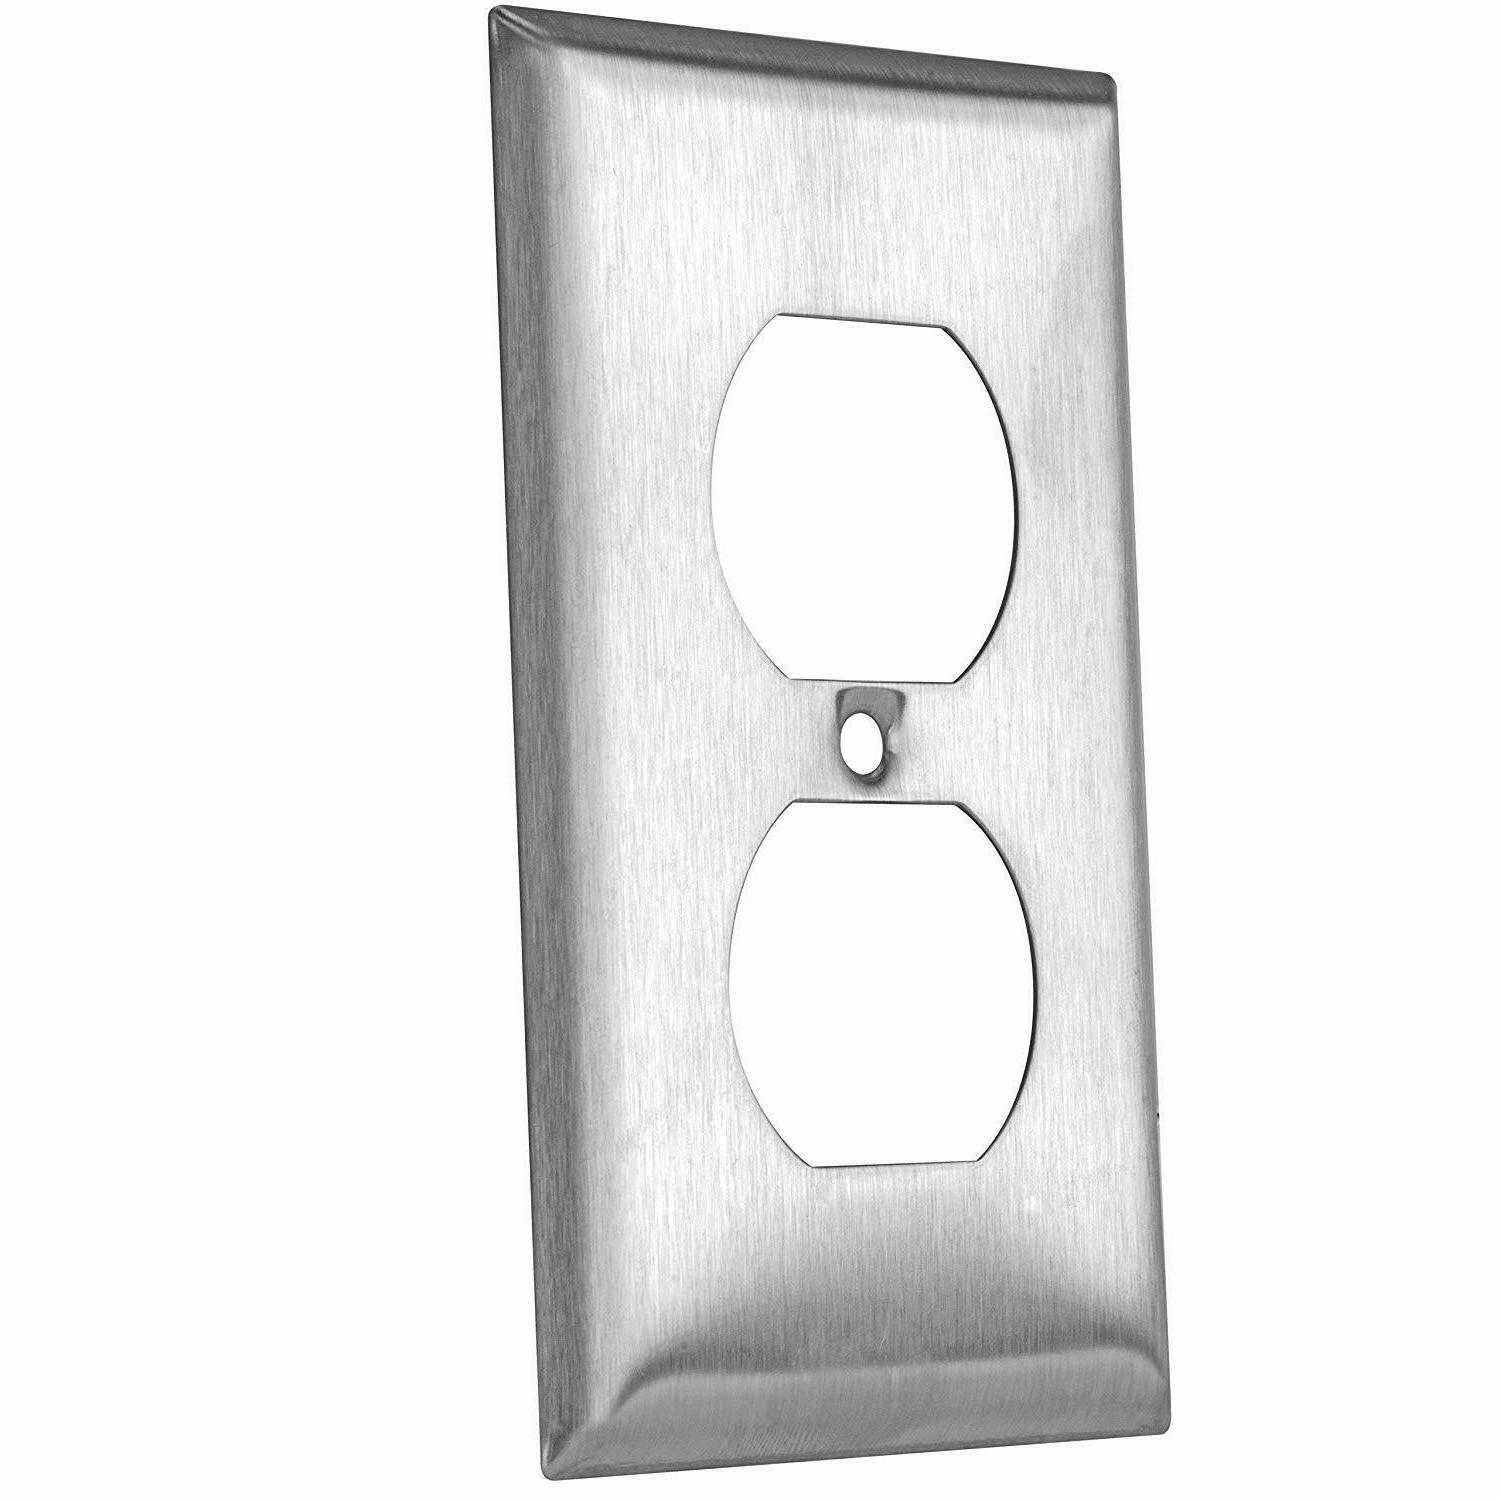 ENERLITES Duplex Receptacle Outlet Wall Plate Stainless Steel